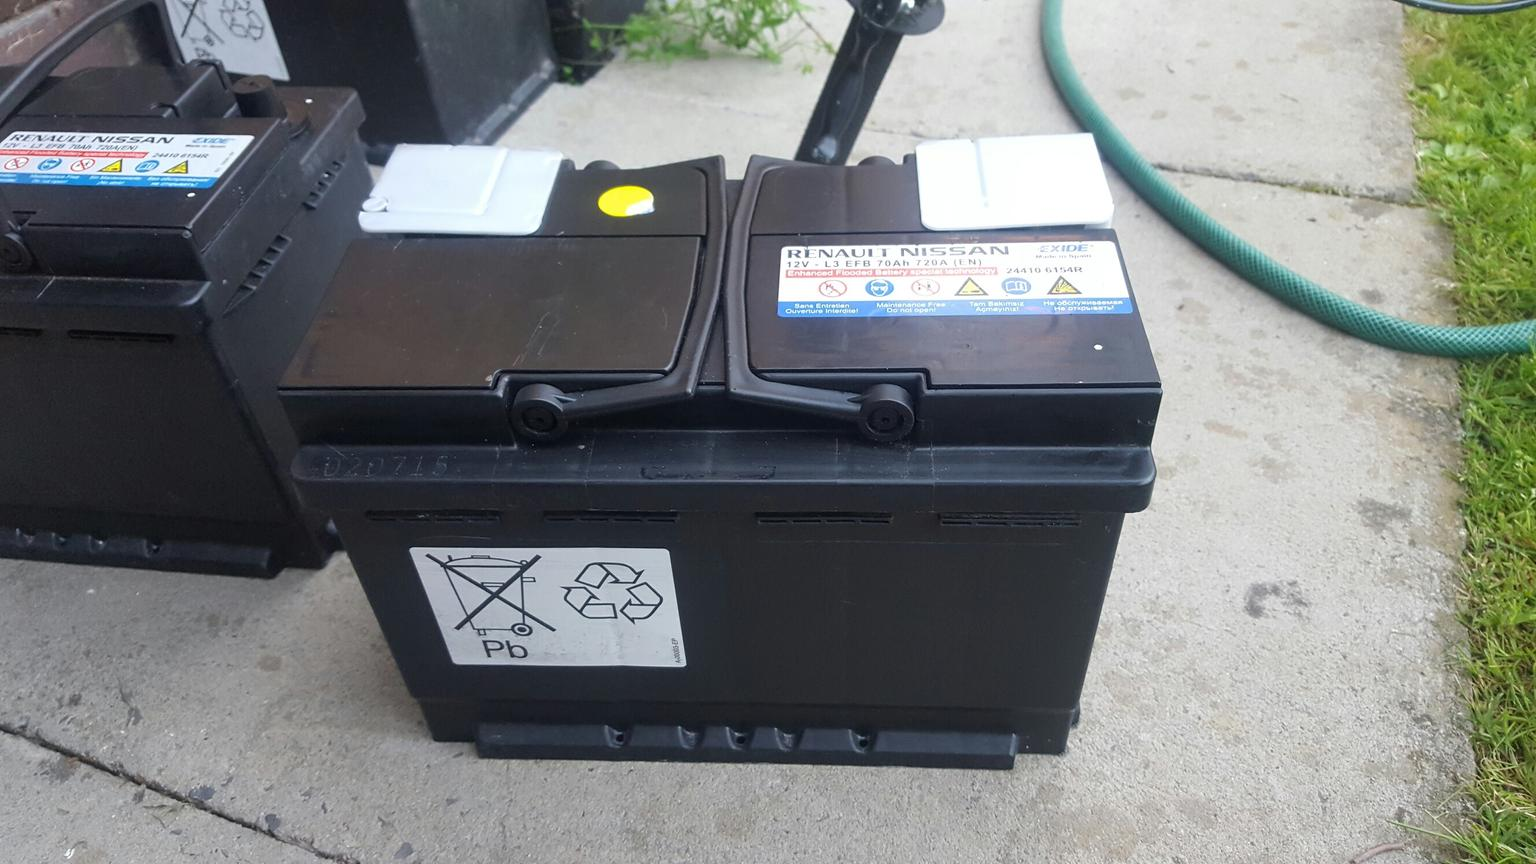 12v l3 efb 70ah 720a battery in wn4 makerfield for for sale shpock